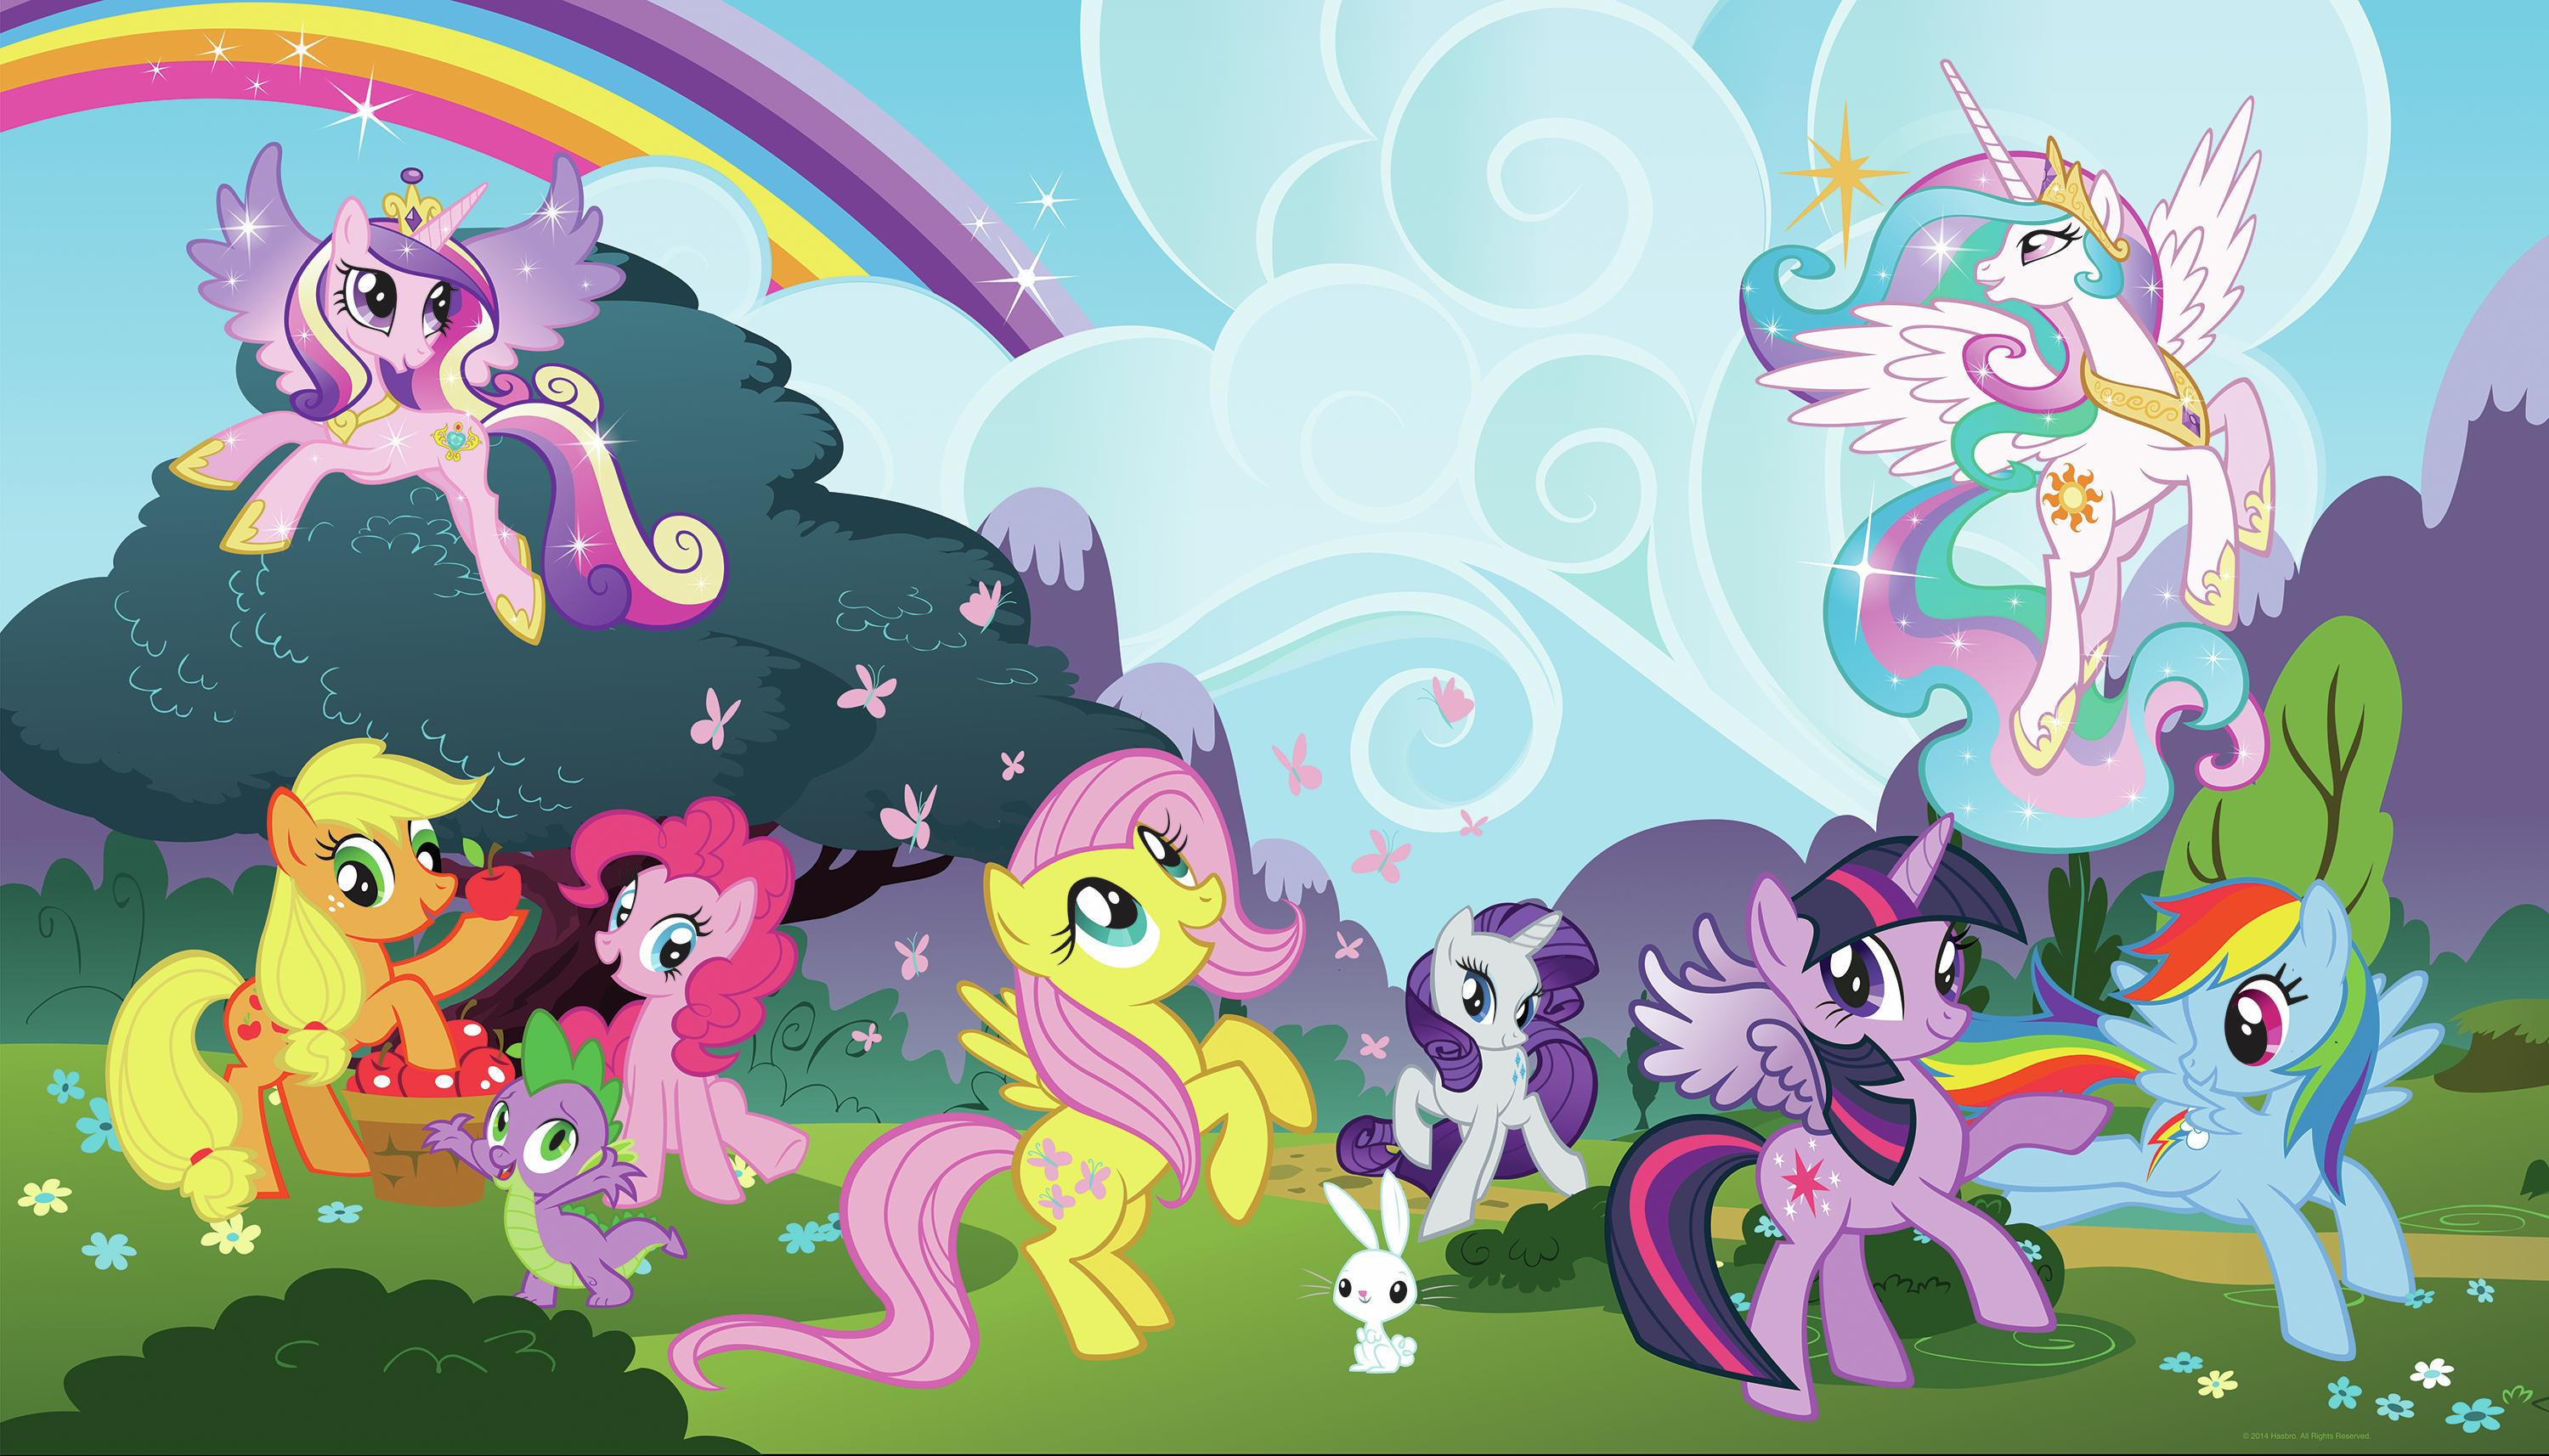 MY LITTLE PONY PONYVILLE MURAL